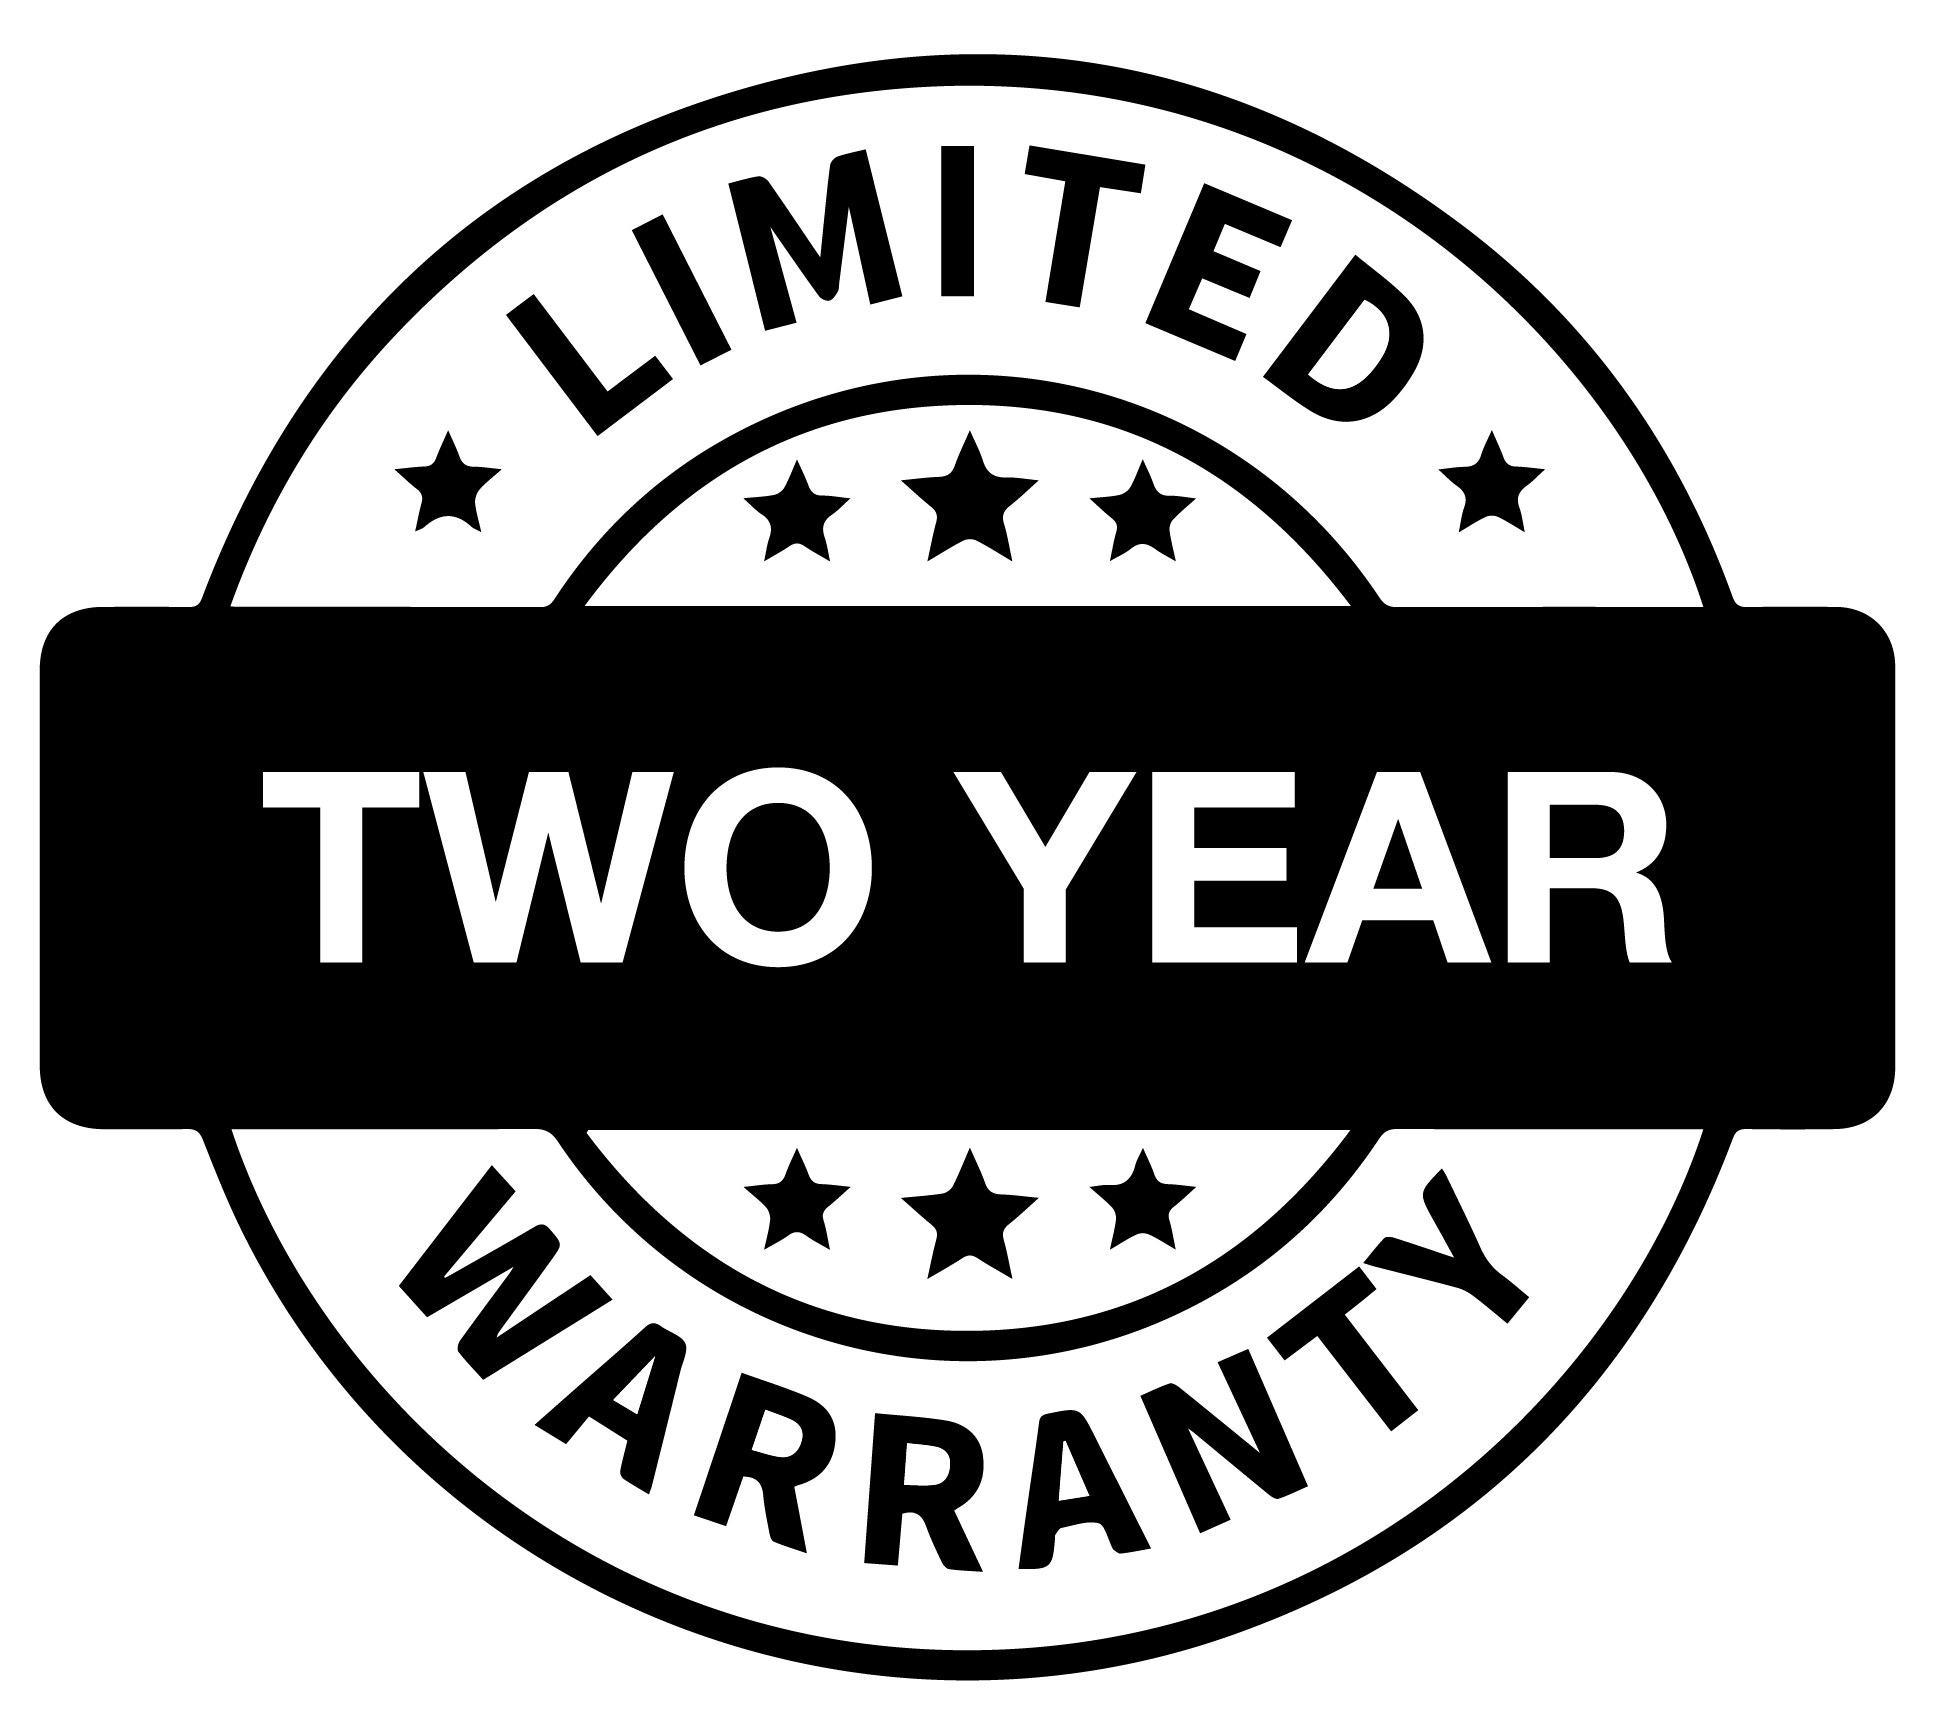 Limited Warranty 2 year 01